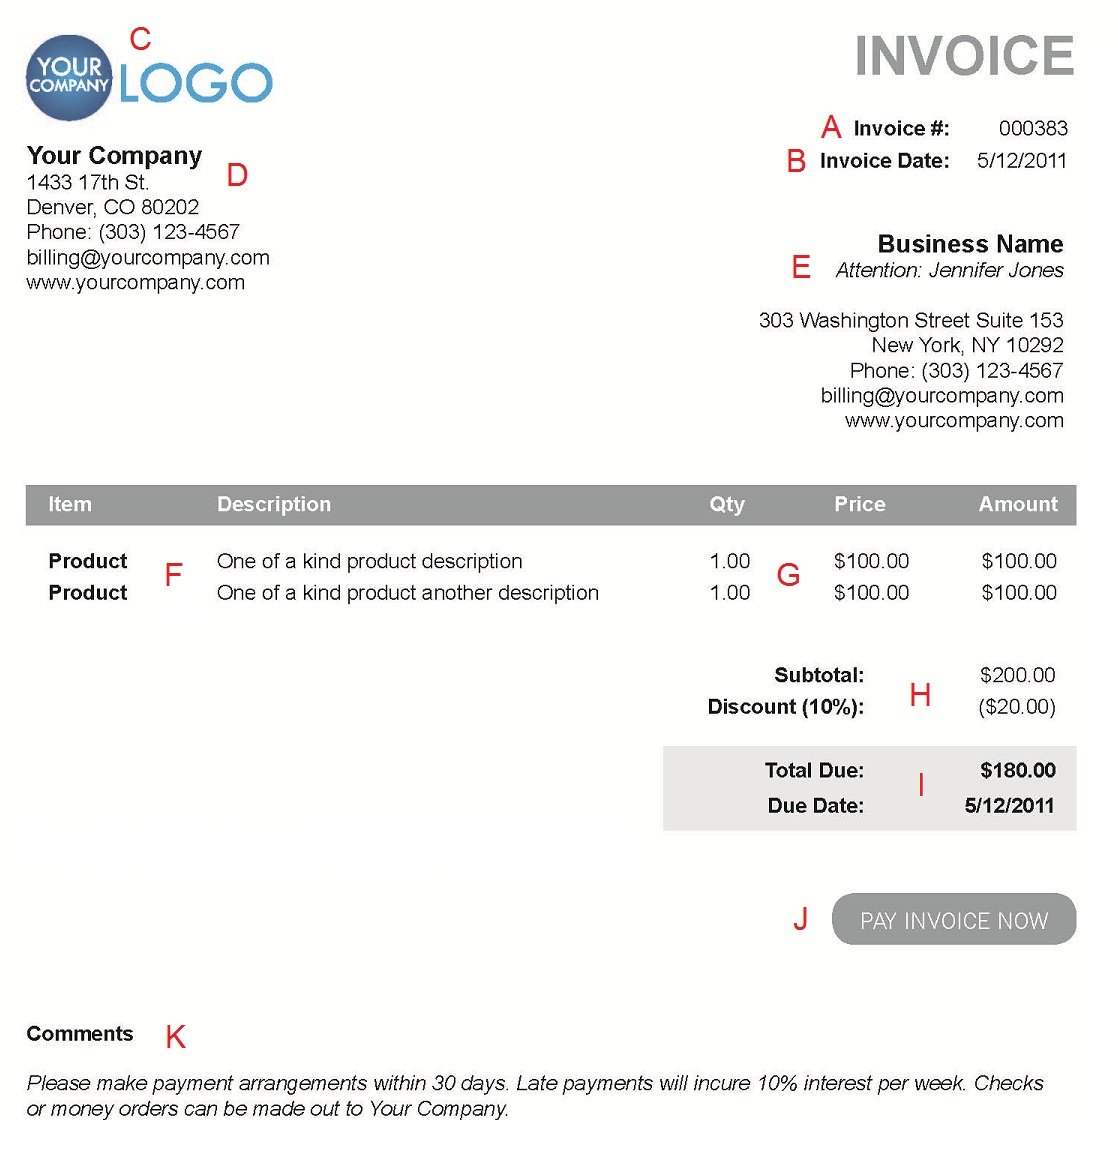 Centralasianshepherdus  Nice The  Different Sections Of An Electronic Payment Invoice With Remarkable A  With Awesome Sample Business Invoice Template Also Hyundai Invoice Pricing In Addition Invoice Meaning In Accounts And Tax Invoice Statement As Well As No Vat Number On Invoice Additionally  Ford Escape Invoice Price From Paysimplecom With Centralasianshepherdus  Remarkable The  Different Sections Of An Electronic Payment Invoice With Awesome A  And Nice Sample Business Invoice Template Also Hyundai Invoice Pricing In Addition Invoice Meaning In Accounts From Paysimplecom